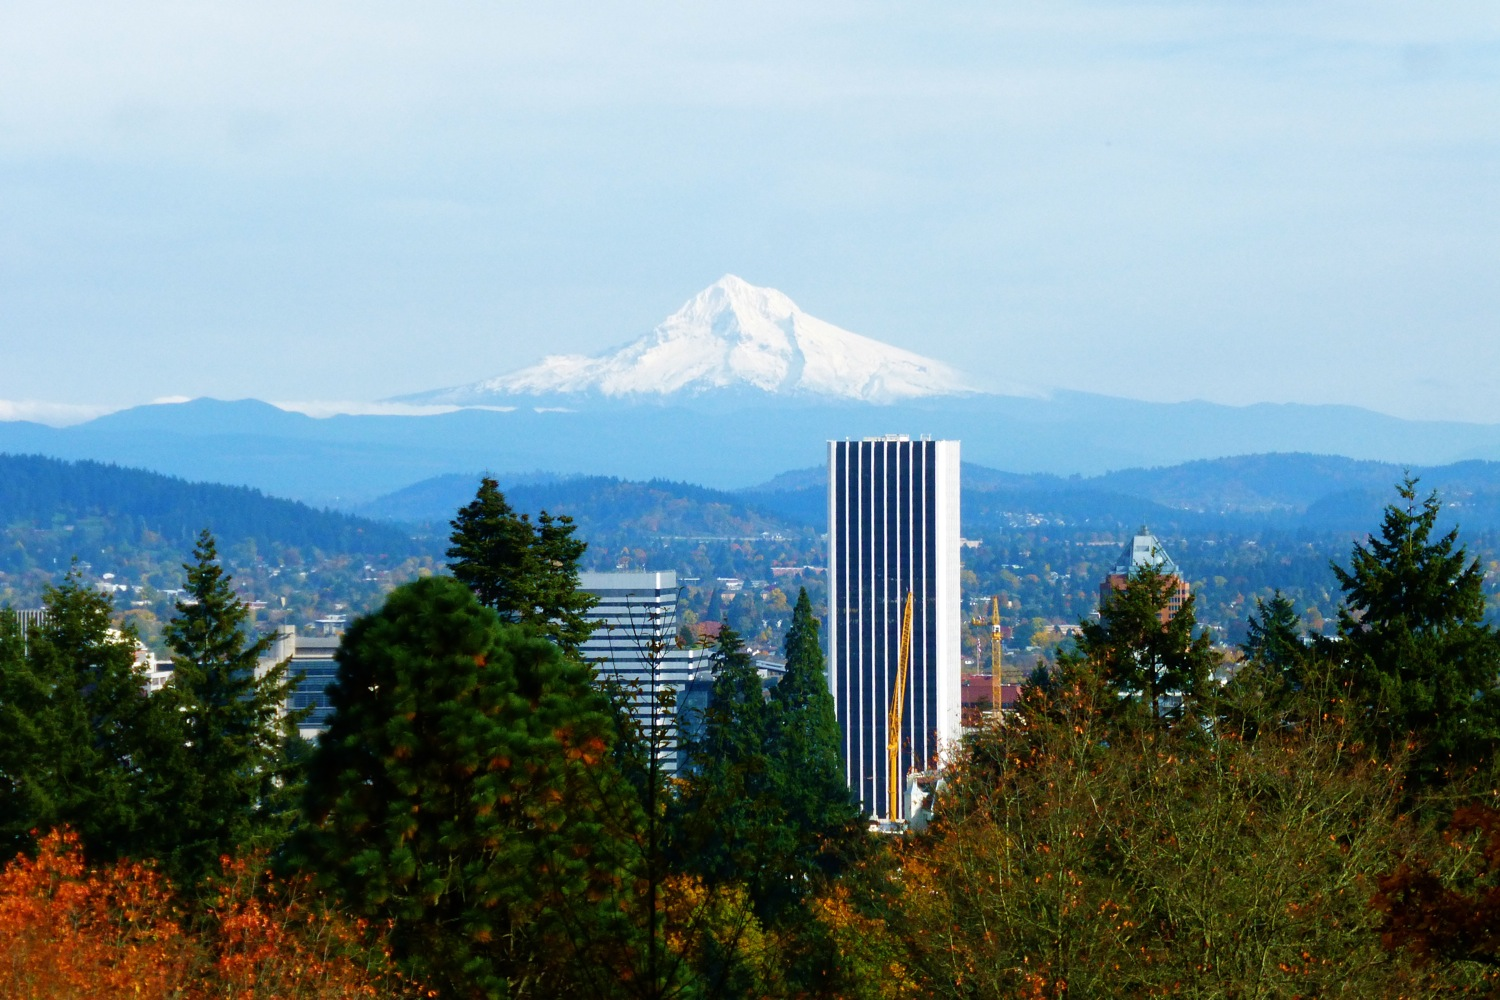 Mount Hood as seen from Portland Japanese Garden